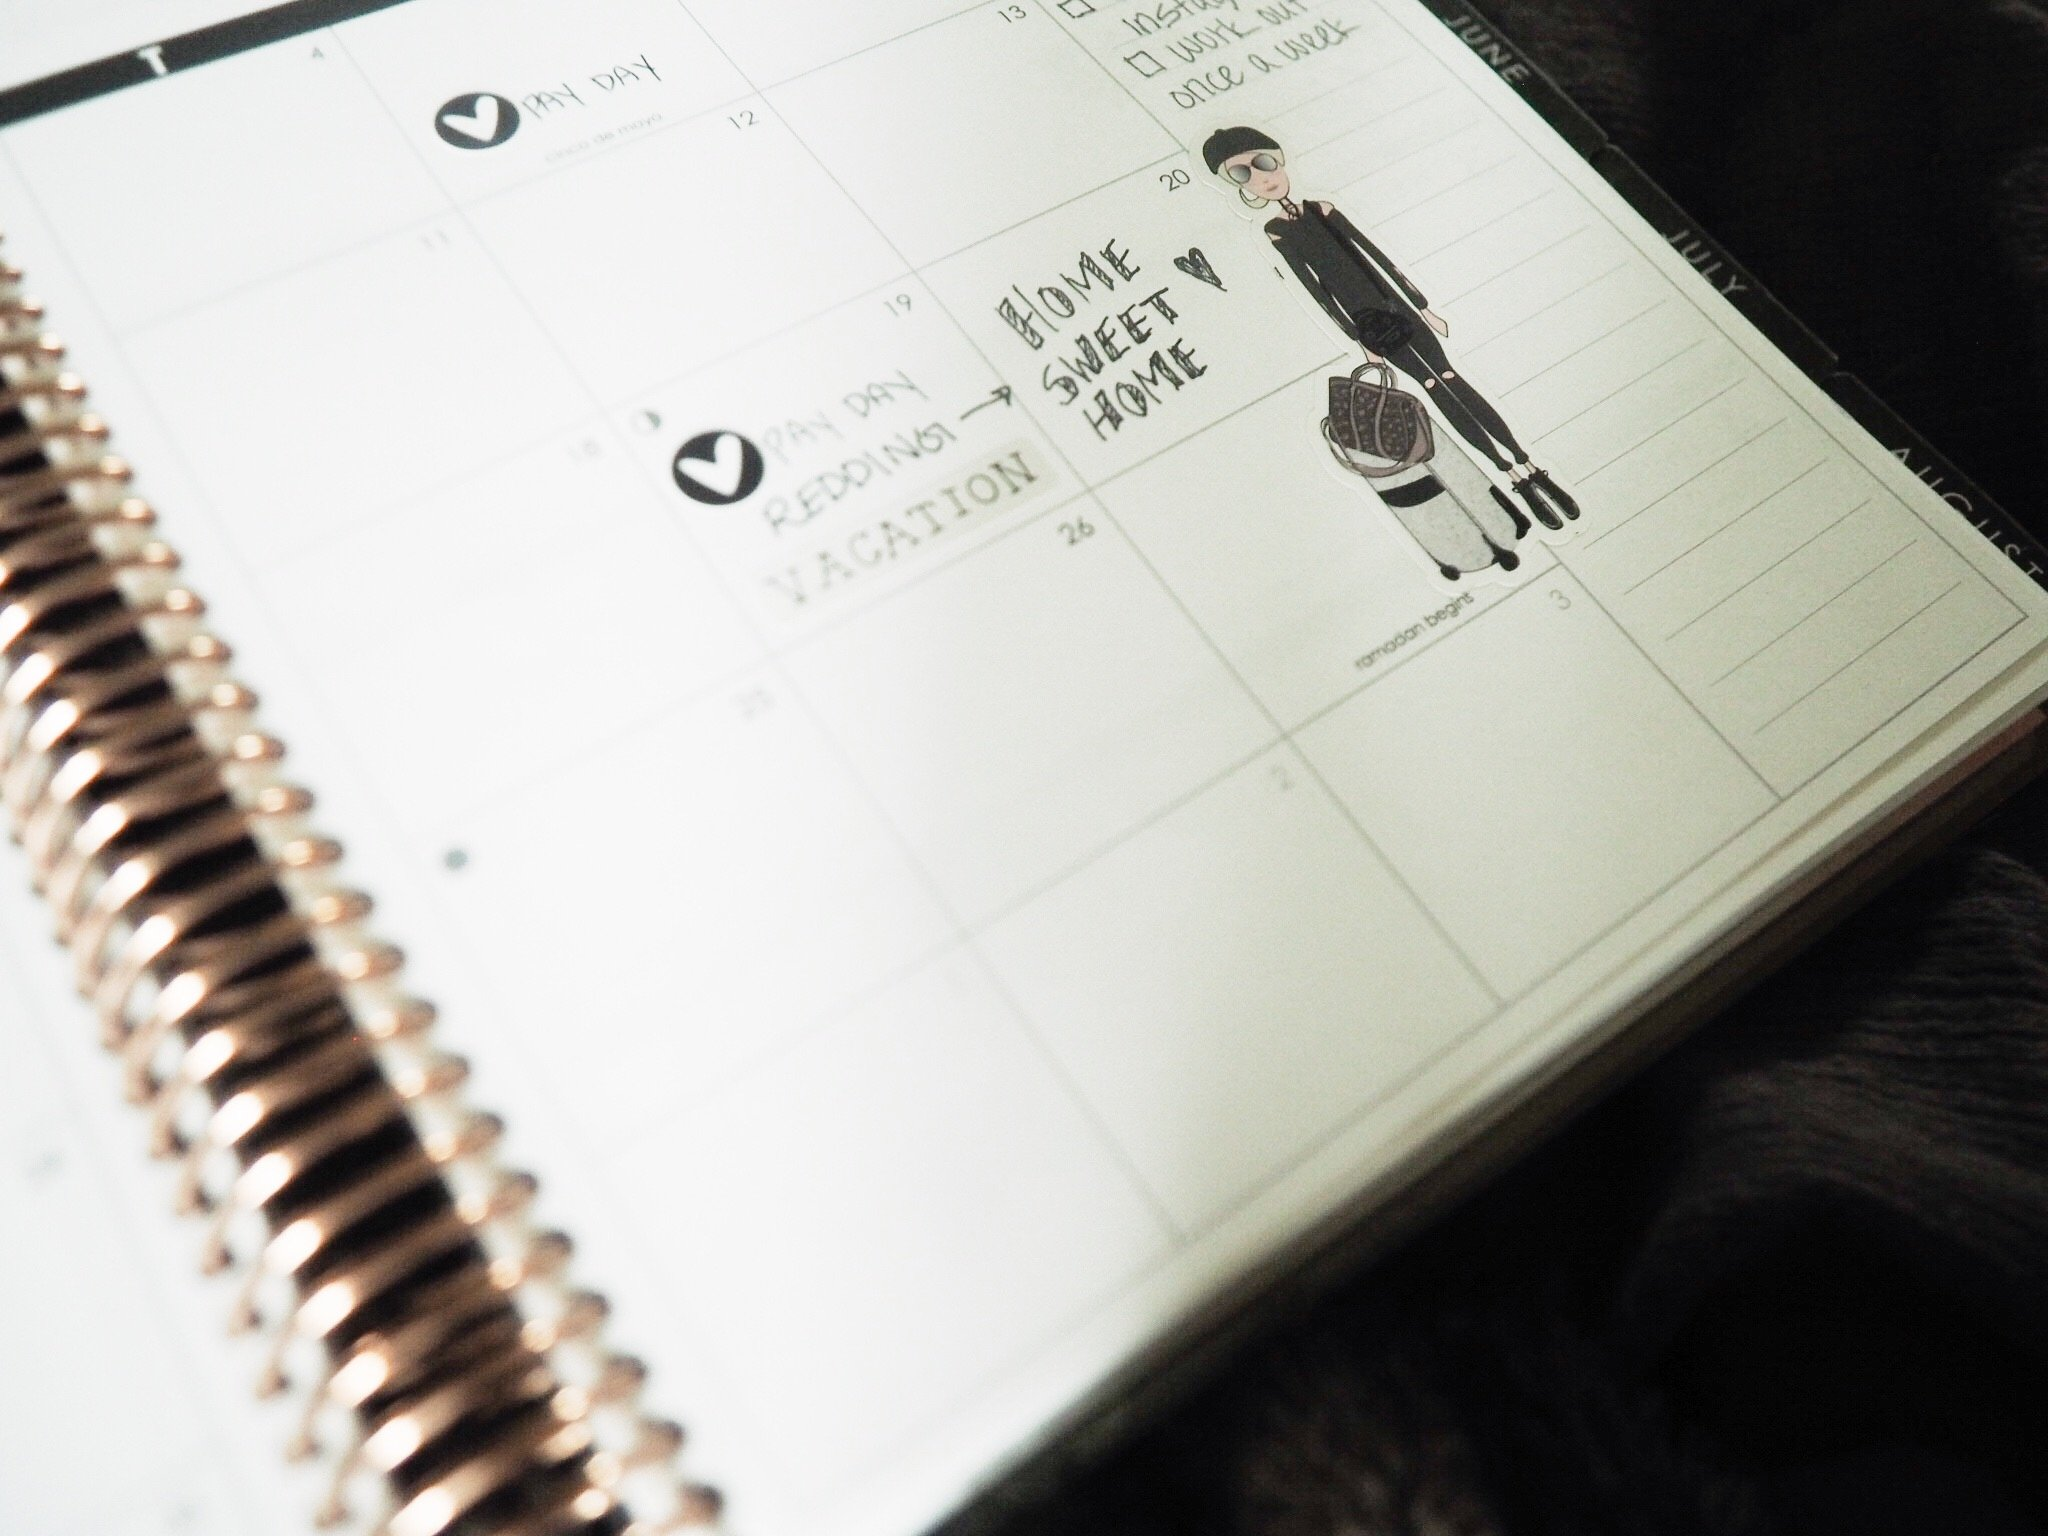 Use the Erin Condren Planner to organize your life!